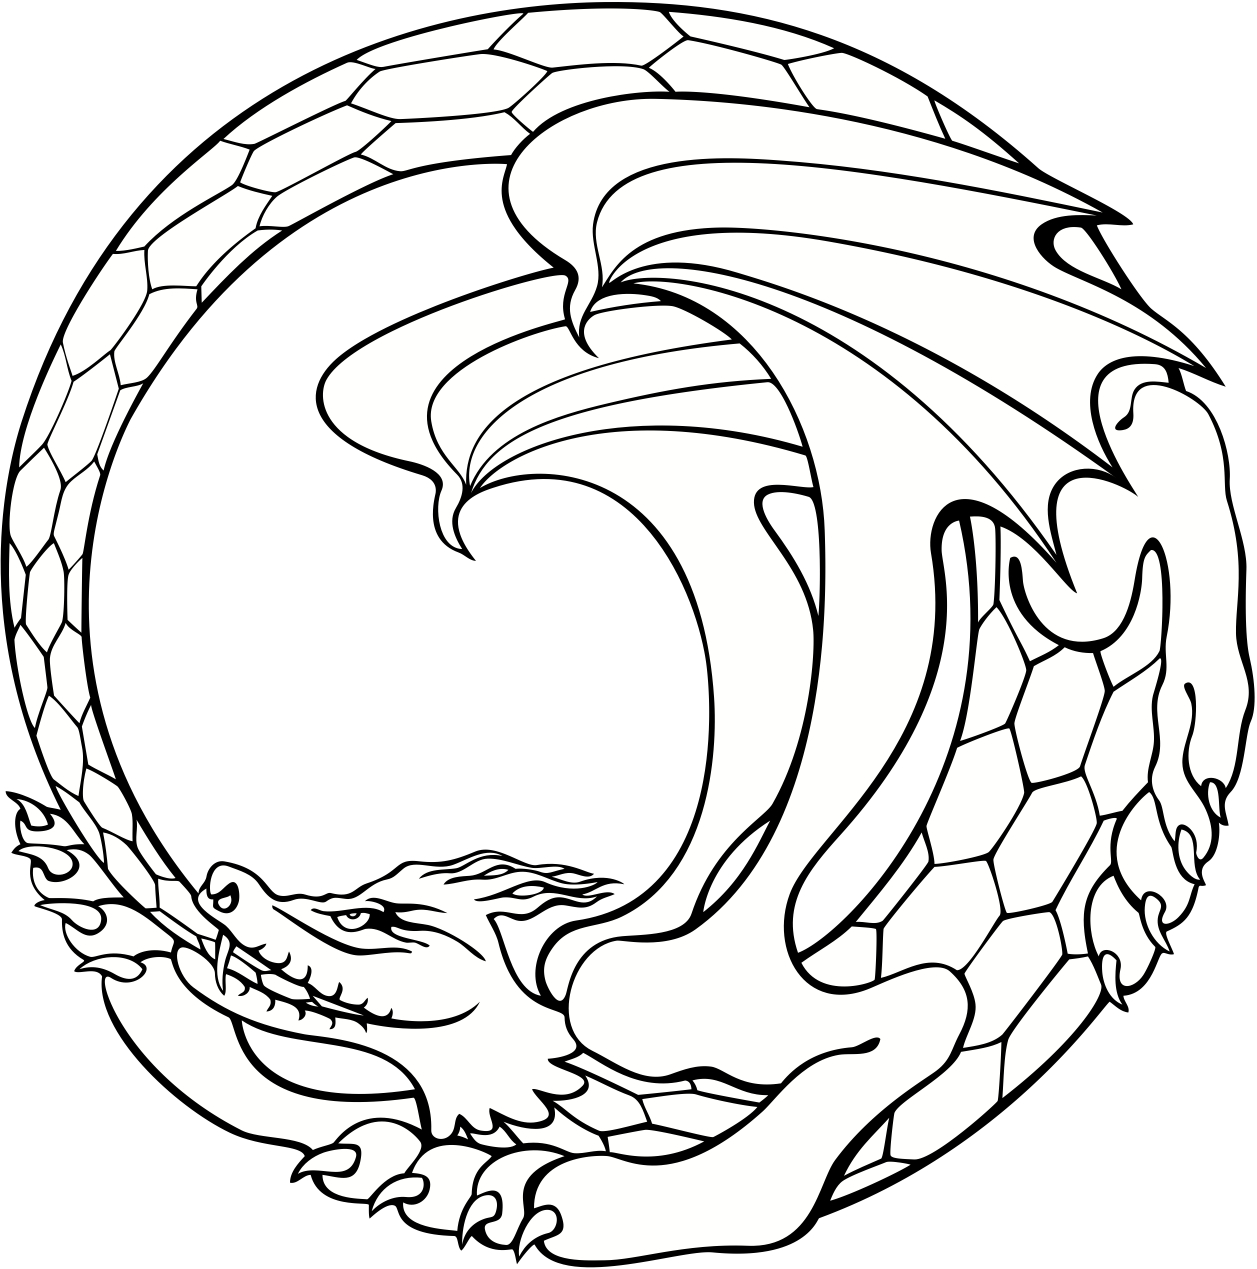 Tribal Dragon Tattoos together with  in addition 315322411381336990 additionally 544794886143901198 also 348747564868132474. on 37 tribal dragons for sticker design inspiration